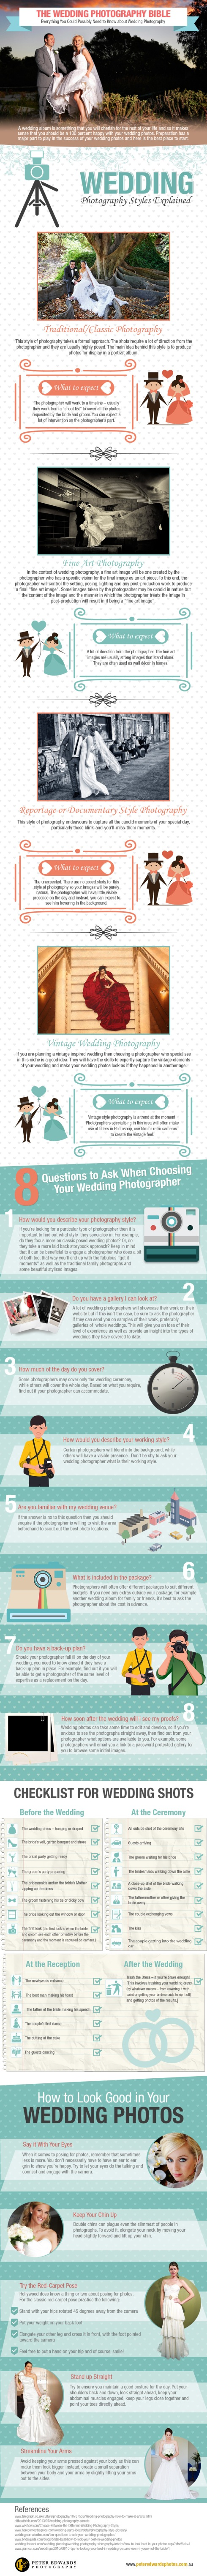 Wedding-photography-Bible-Infographic (2)